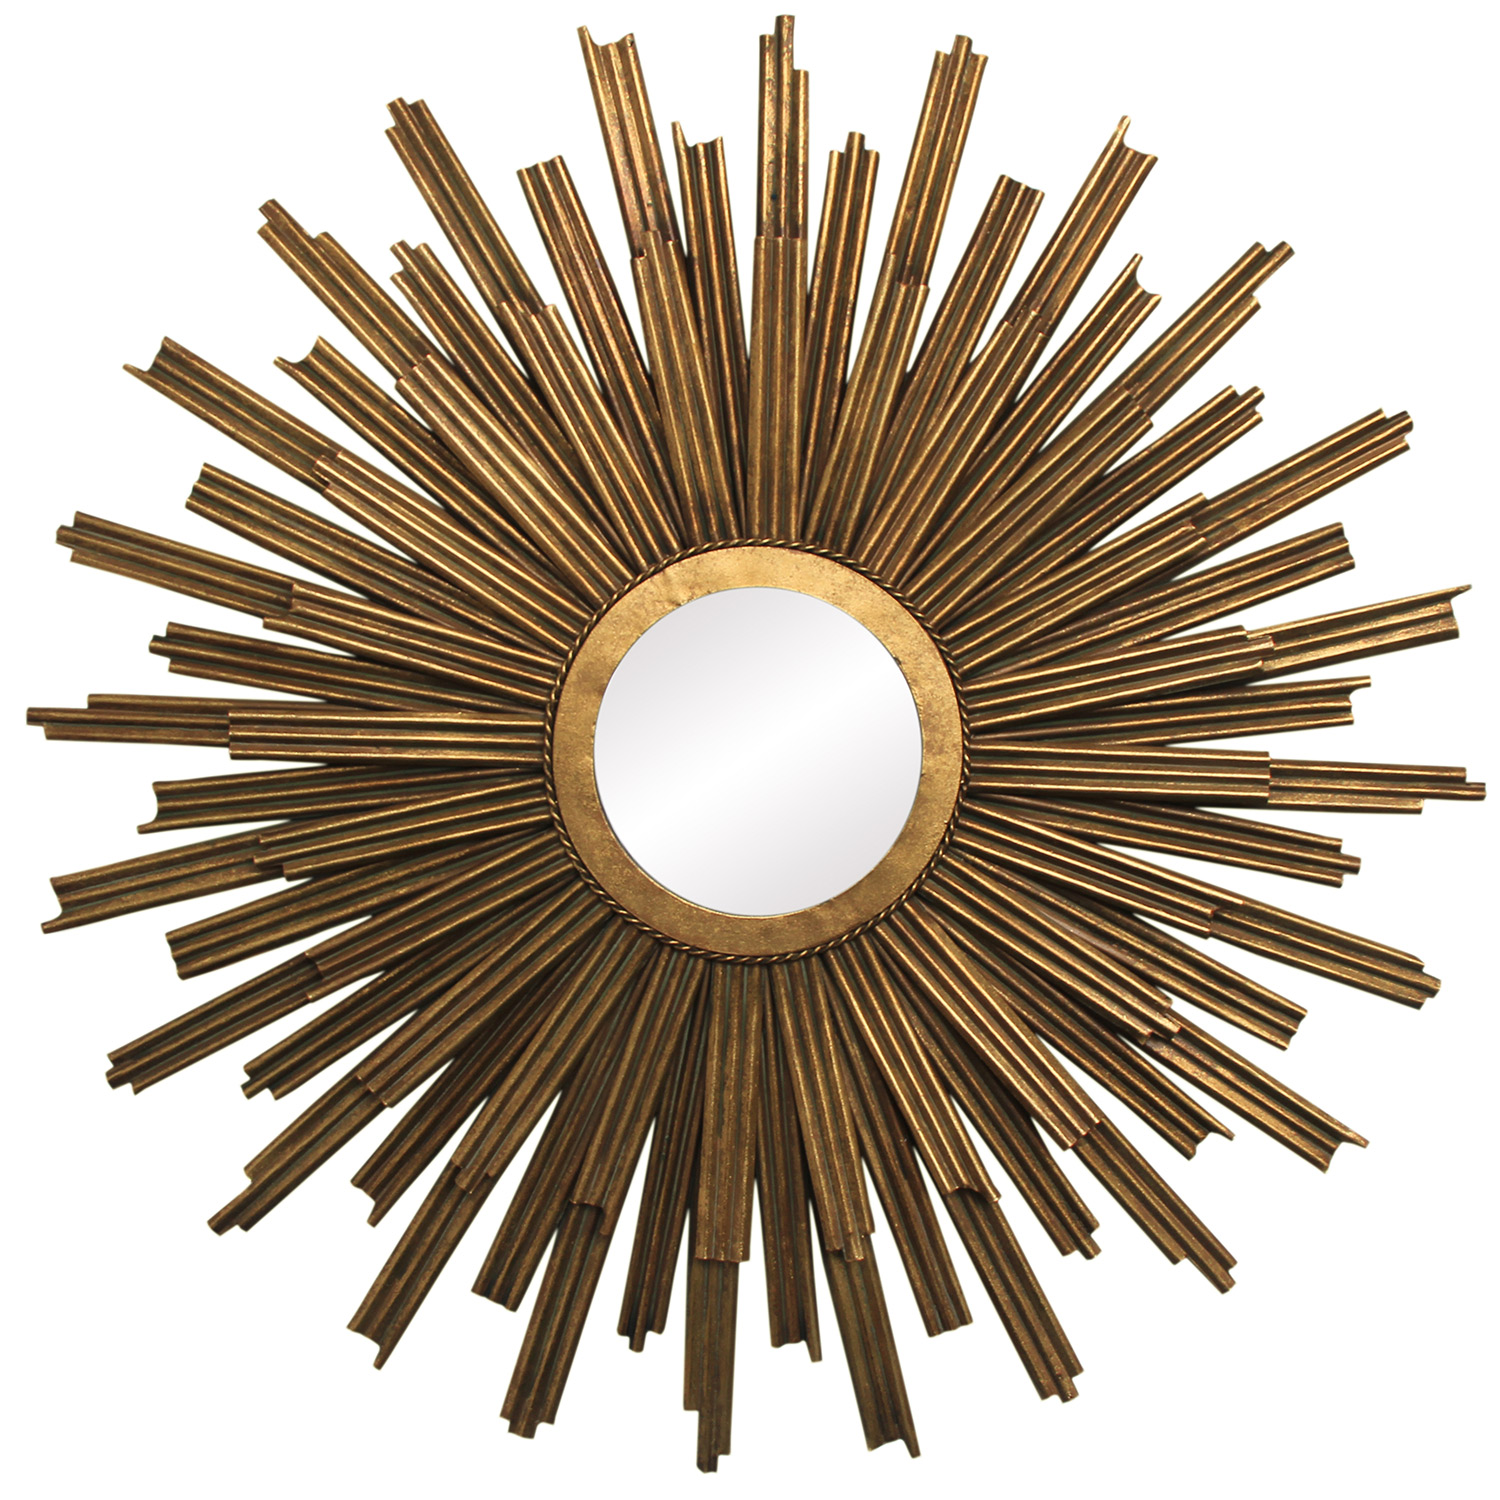 Cozy sunburst mirrors with rustic table and night lap combined plus luxury wall